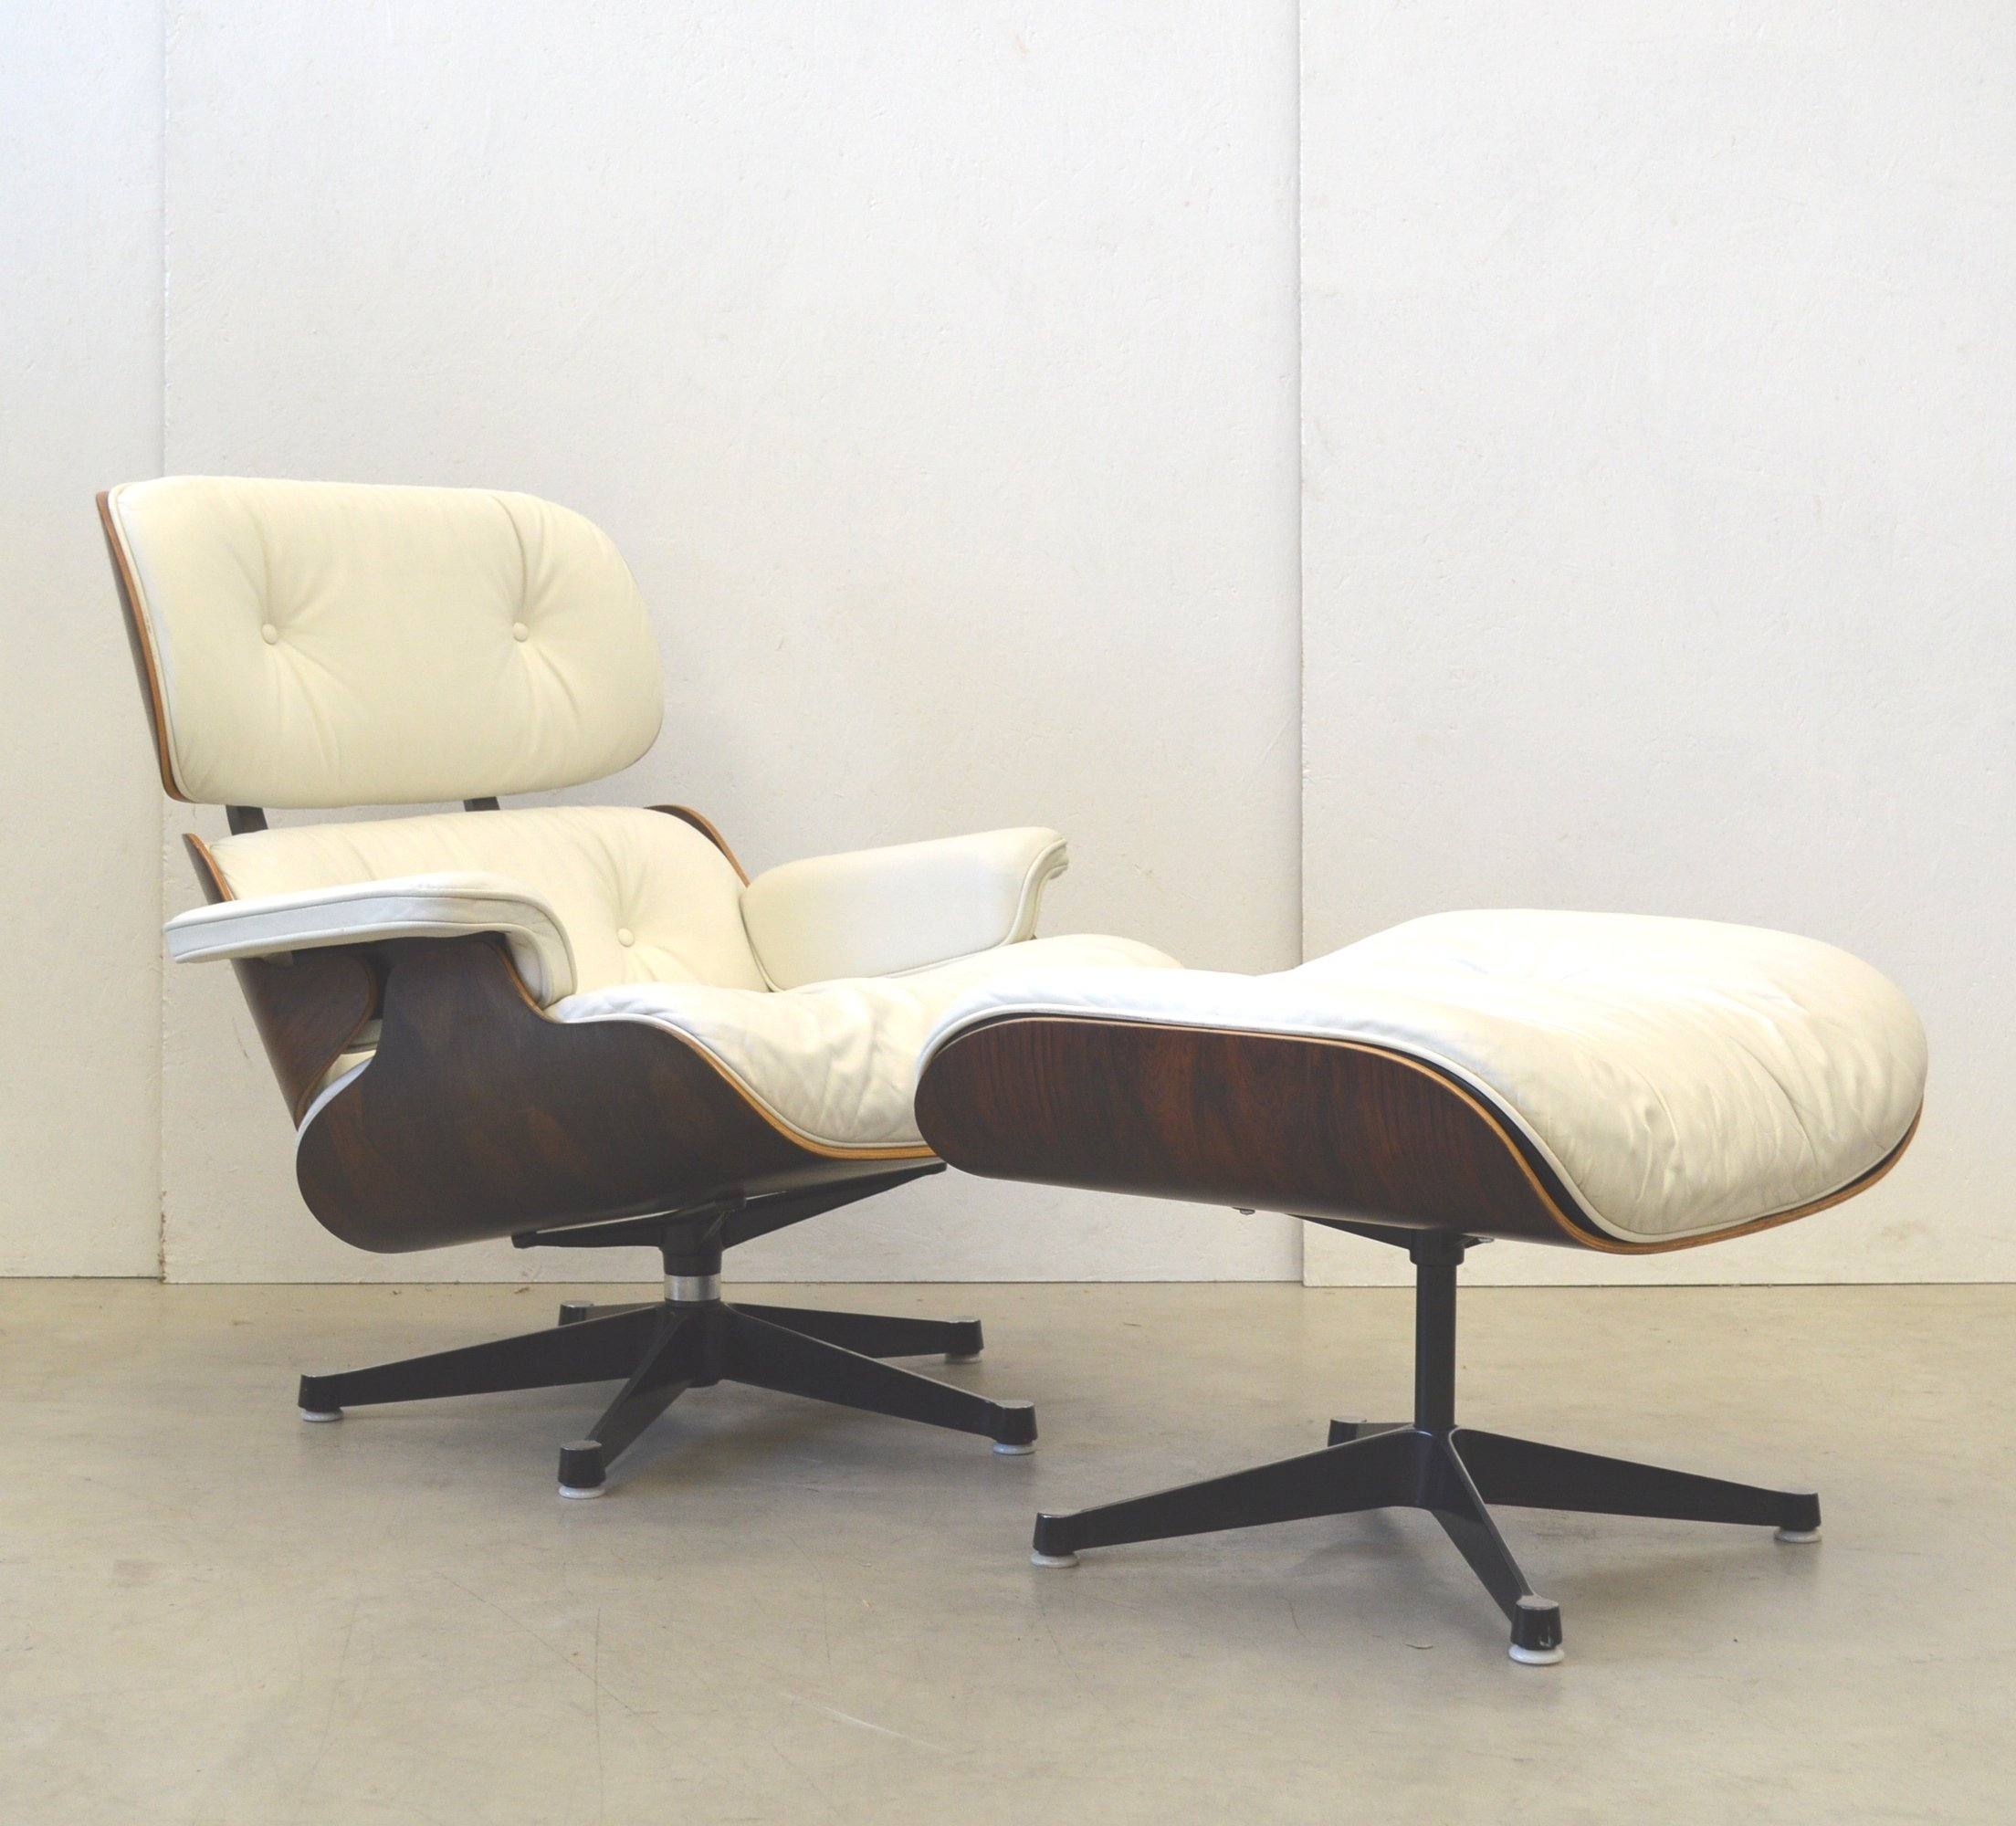 Rare White Leather Herman Miller Rosewood Lounge Chair & Ottoman by Charl